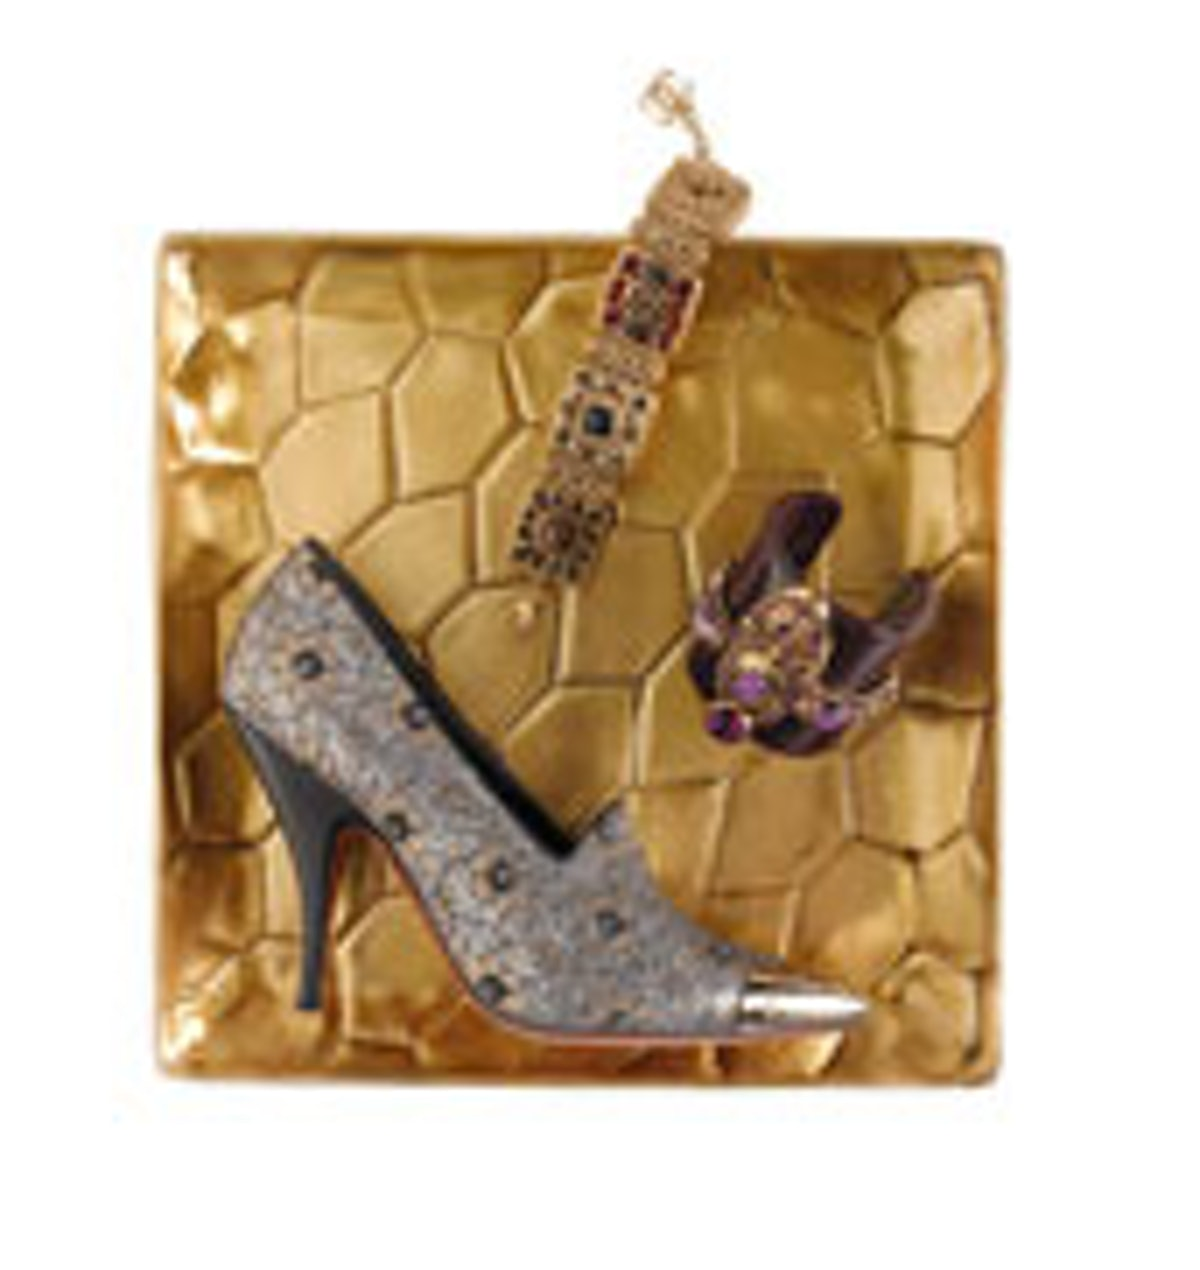 acss-baroque-accessories-search.jpg